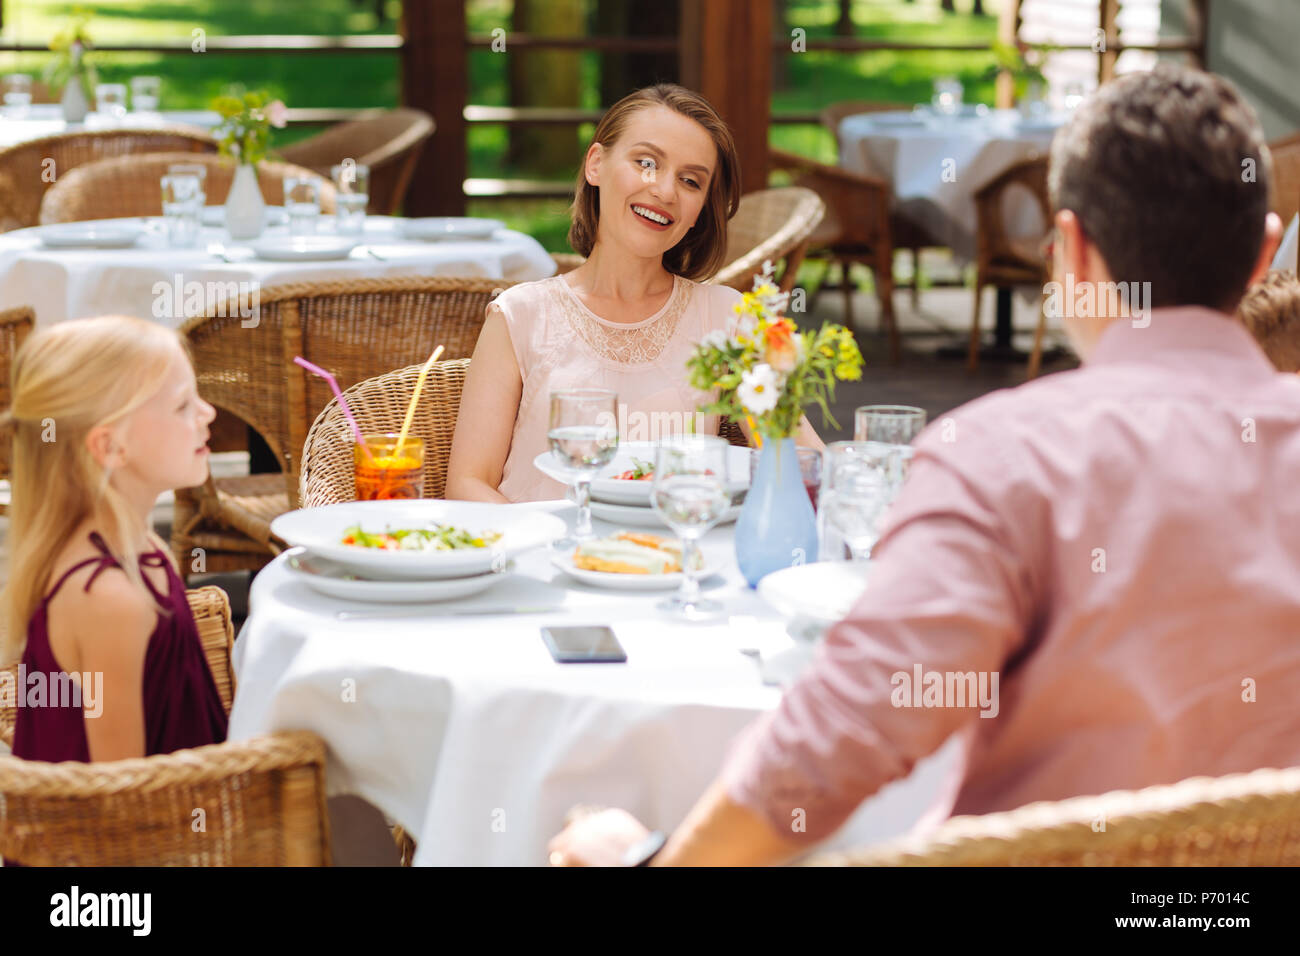 Beaming woman spending her time with family - Stock Image